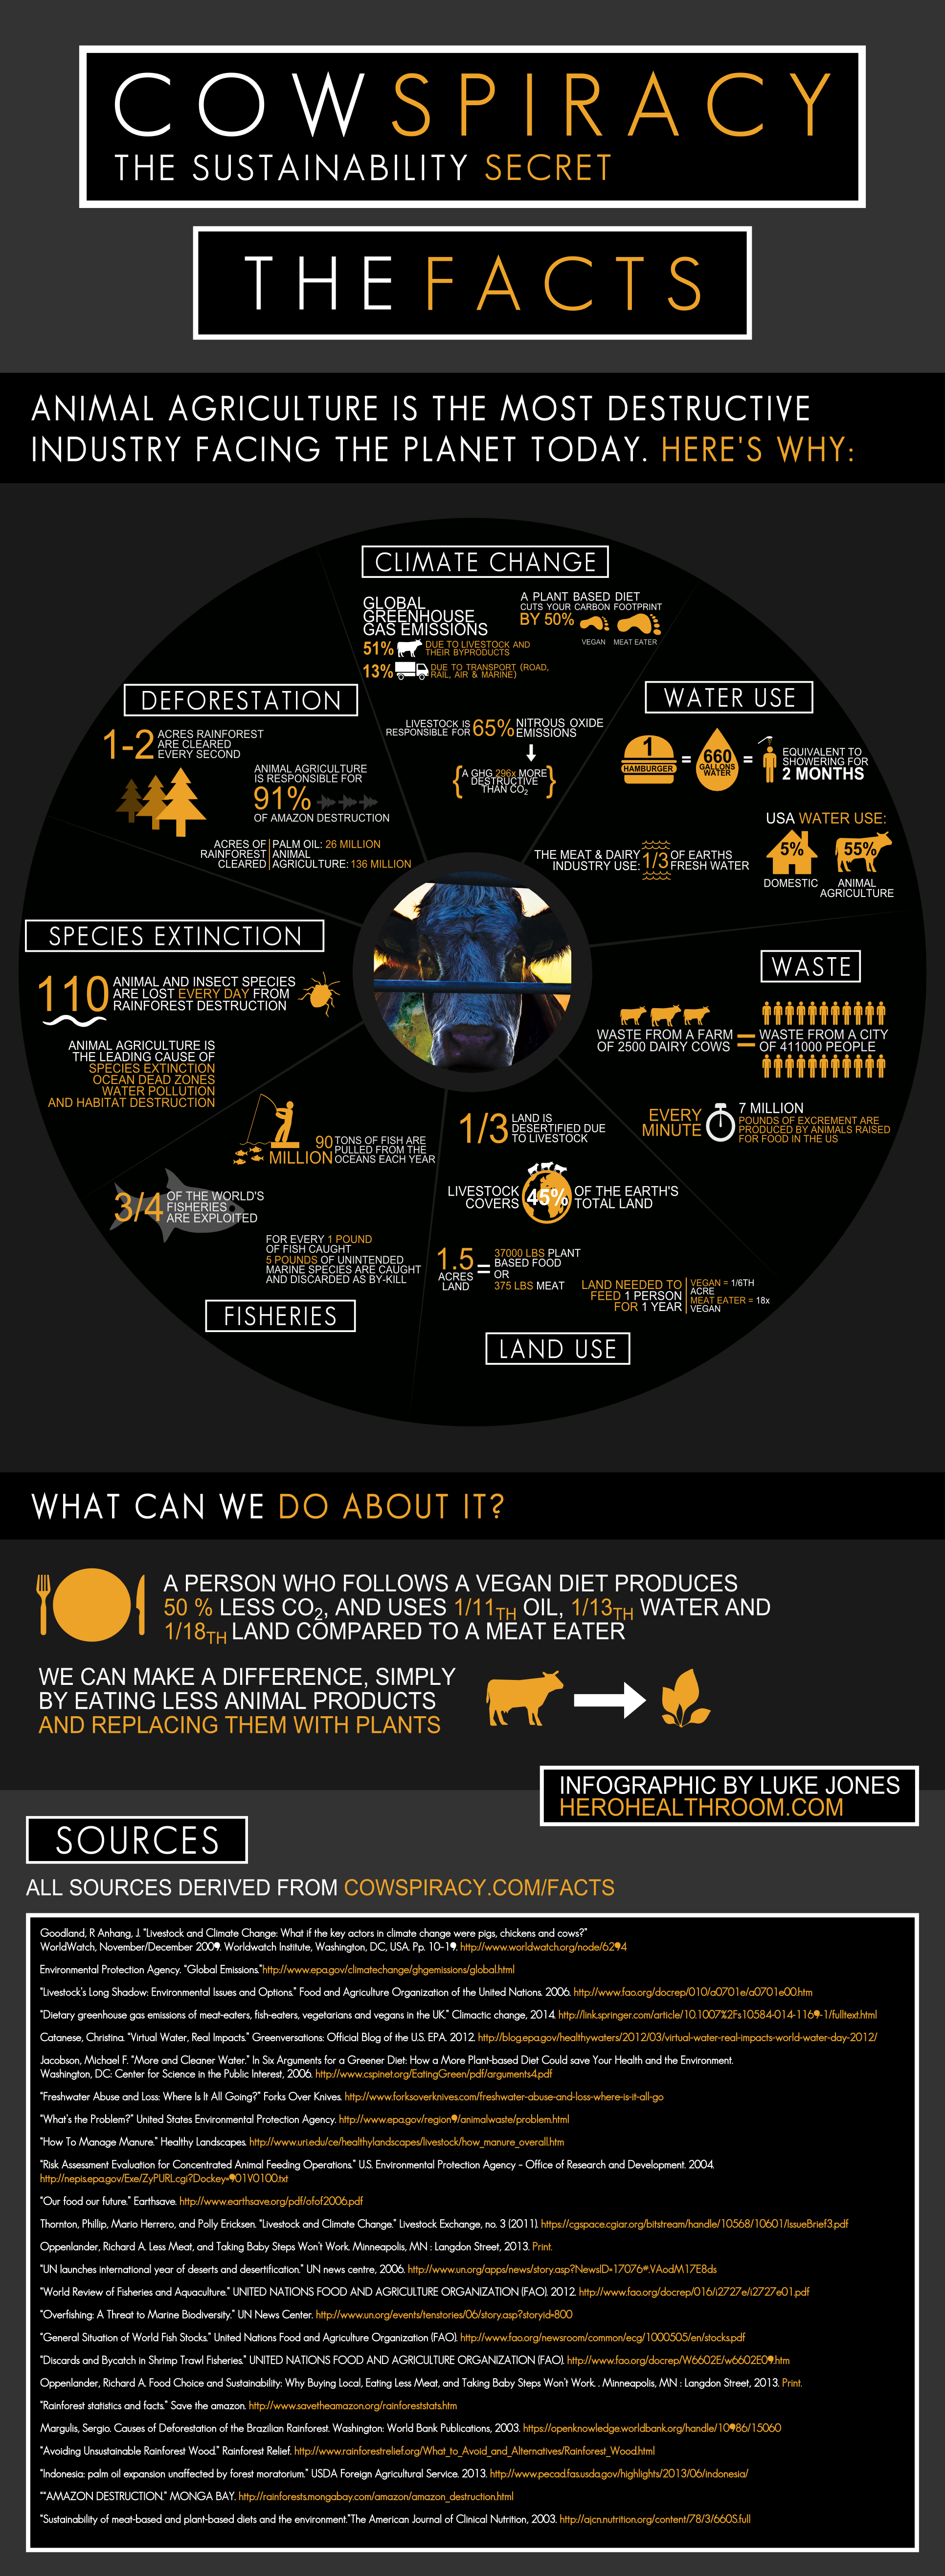 Cowspiracy Infographic  http://www.cowspiracy.com/infographic